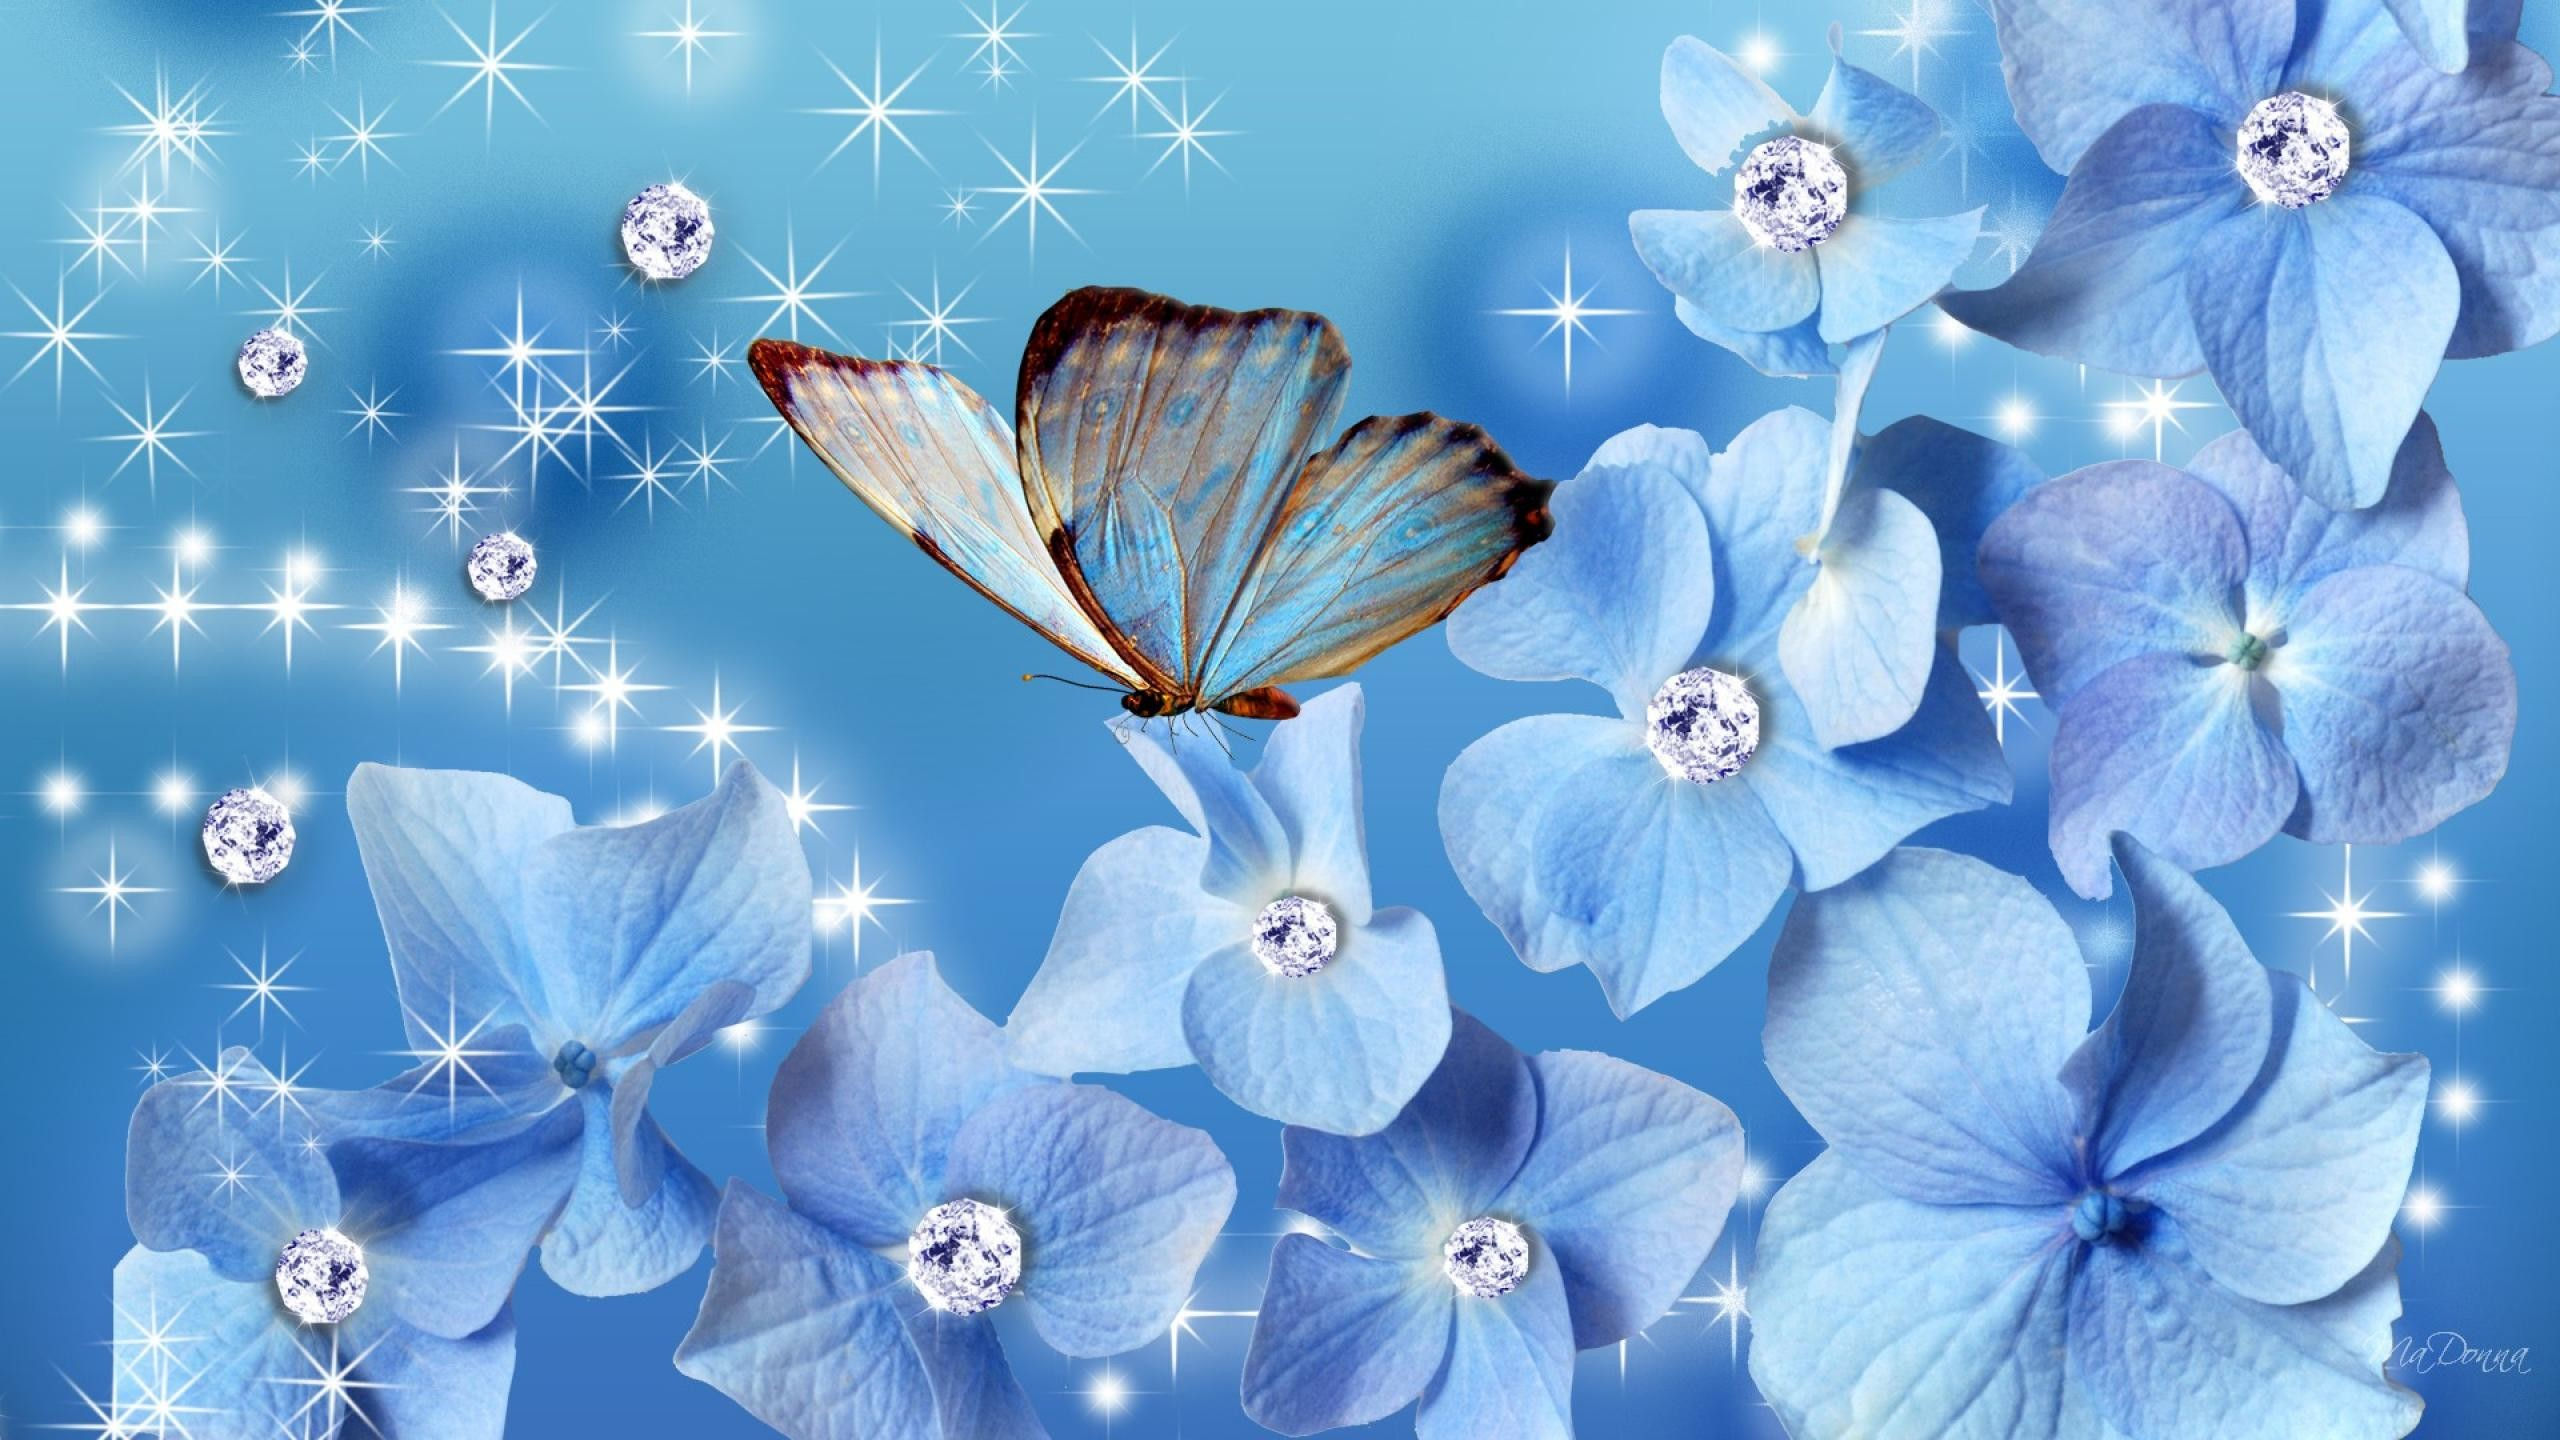 2560x1440 Blue Butterfly Wallpapers Photo Animated Wallpaper Desktop And Blue  Butterfly Wallpapers Wallpapers)